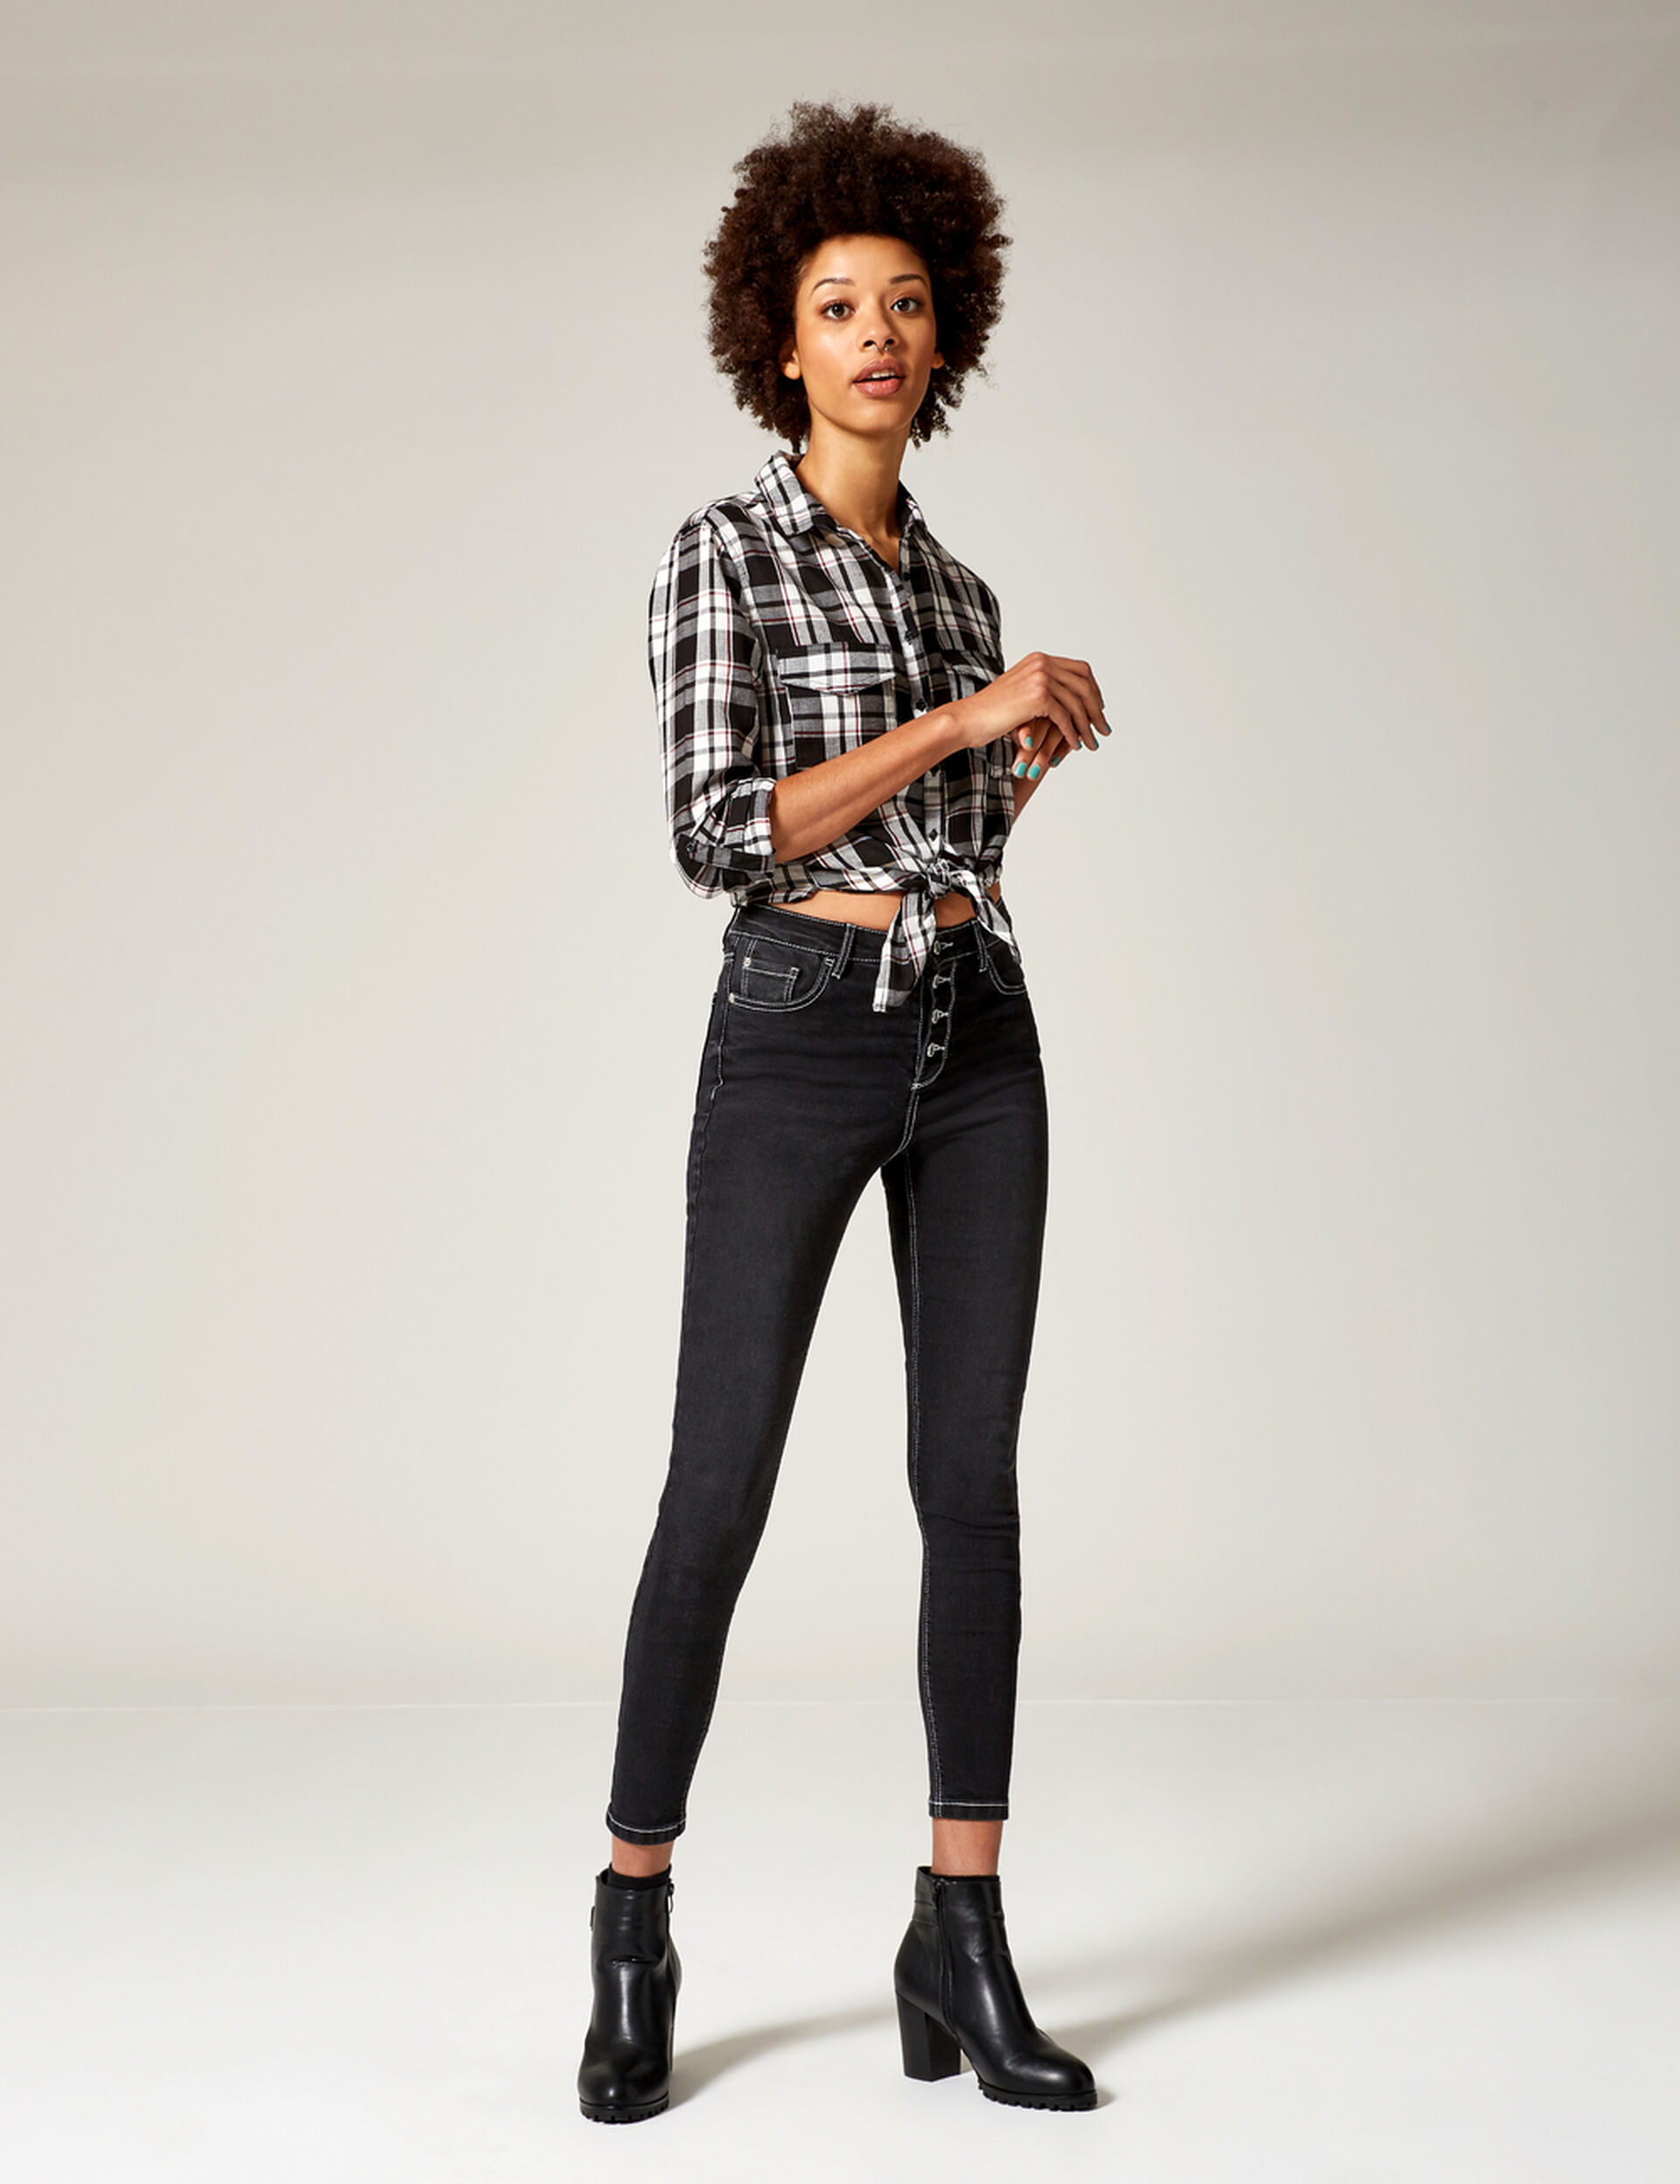 Black high-waisted buttoned jeans